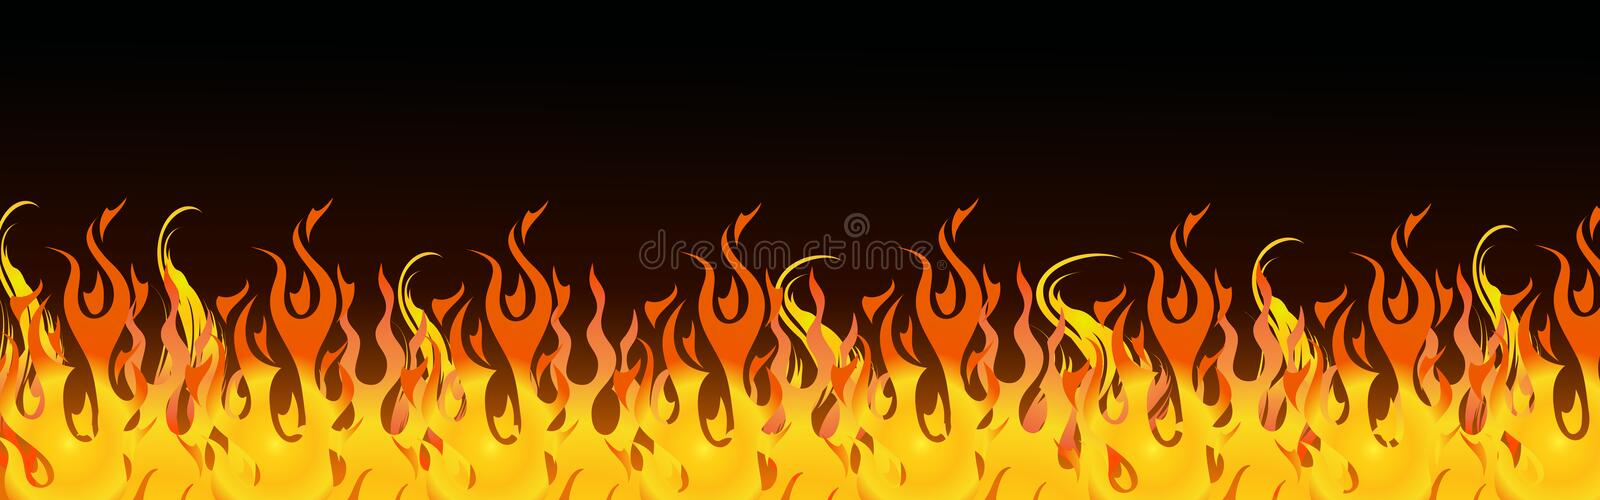 Flames web header stock illustration